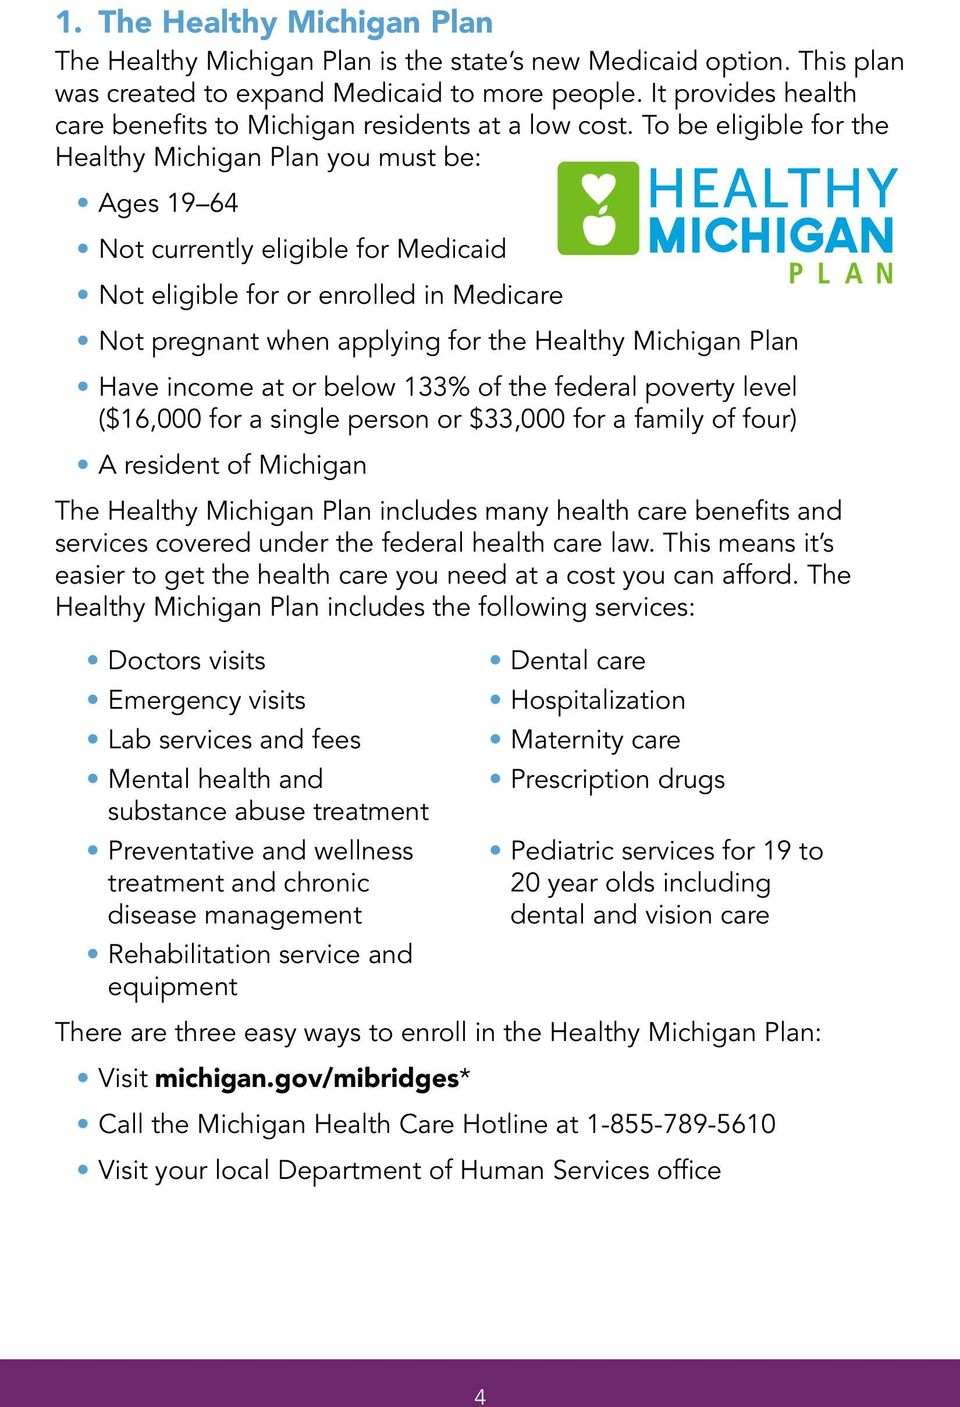 To be eligible for the Healthy Michigan Plan you must be: Ages 19 64 Not currently eligible for Medicaid Not eligible for or enrolled in Medicare Not pregnant when applying for the Healthy Michigan